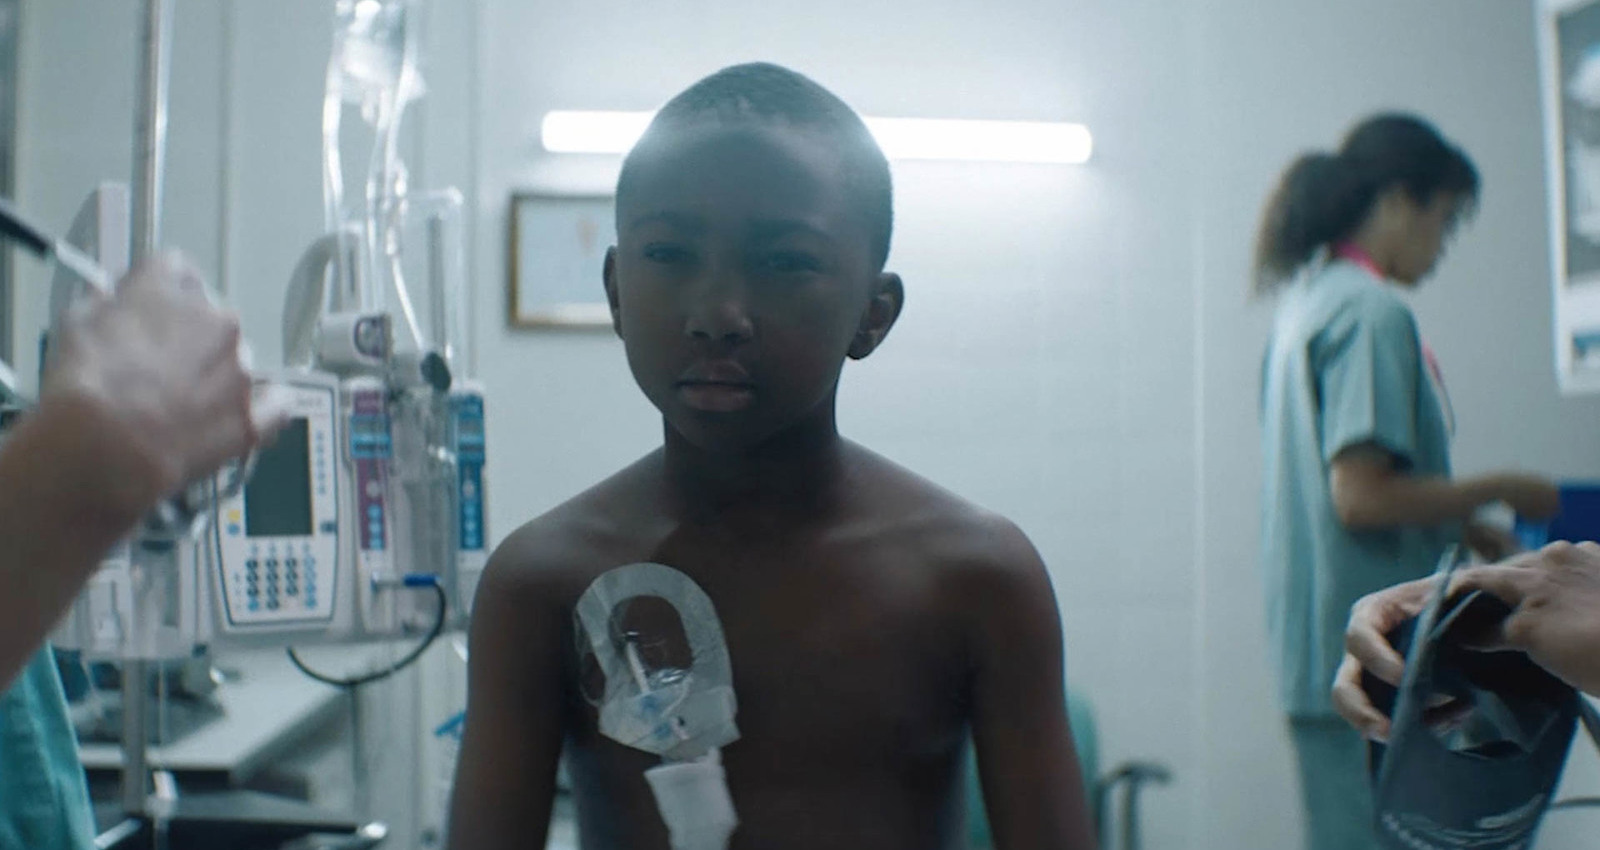 SickKids VS - This Is Why